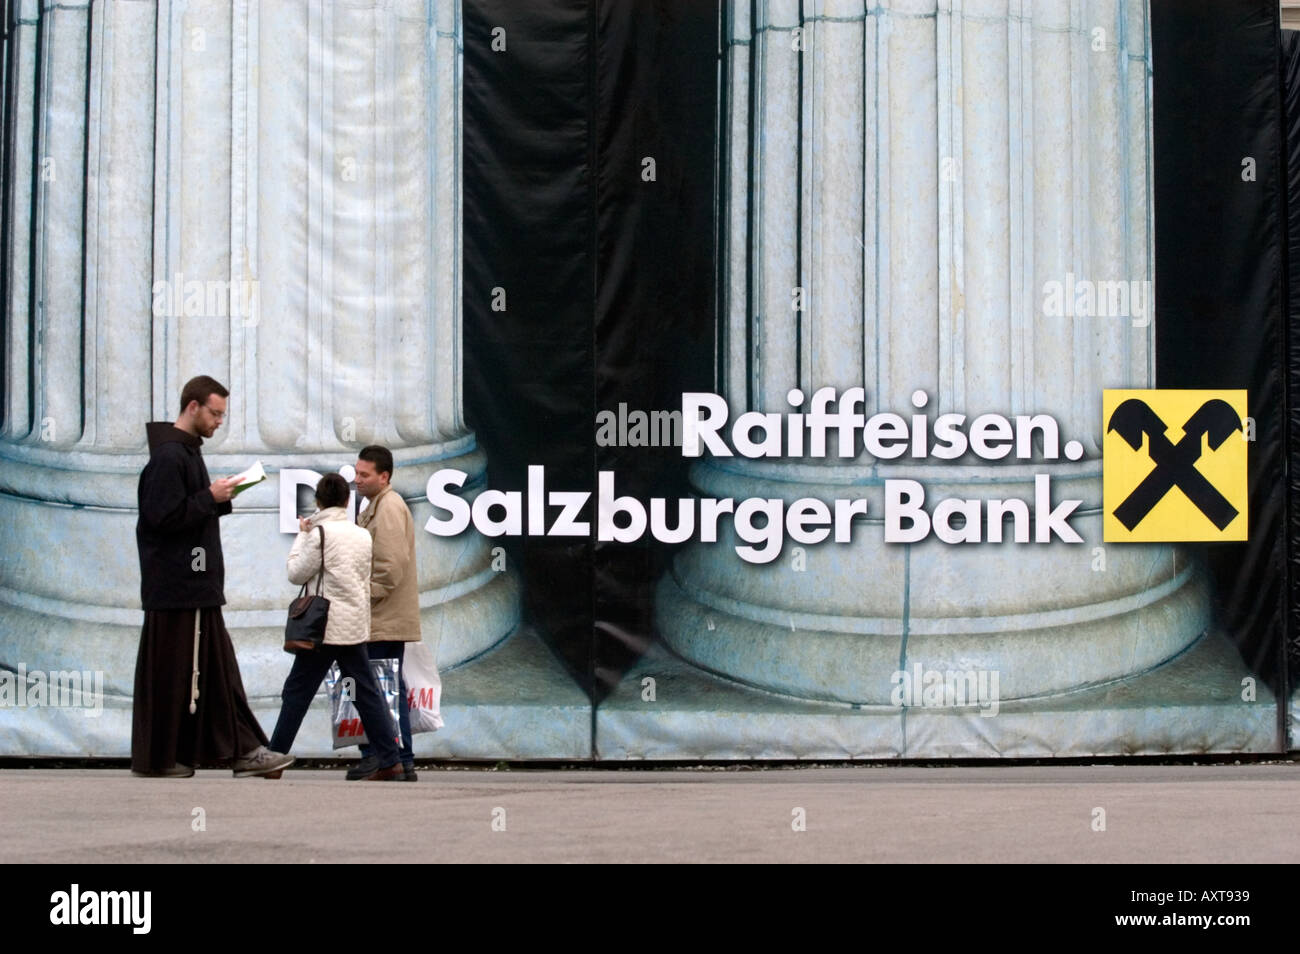 A monk and a couple walk past the Raiffeisen Bank undergoing refurbishment in Salzburg Austria - Stock Image